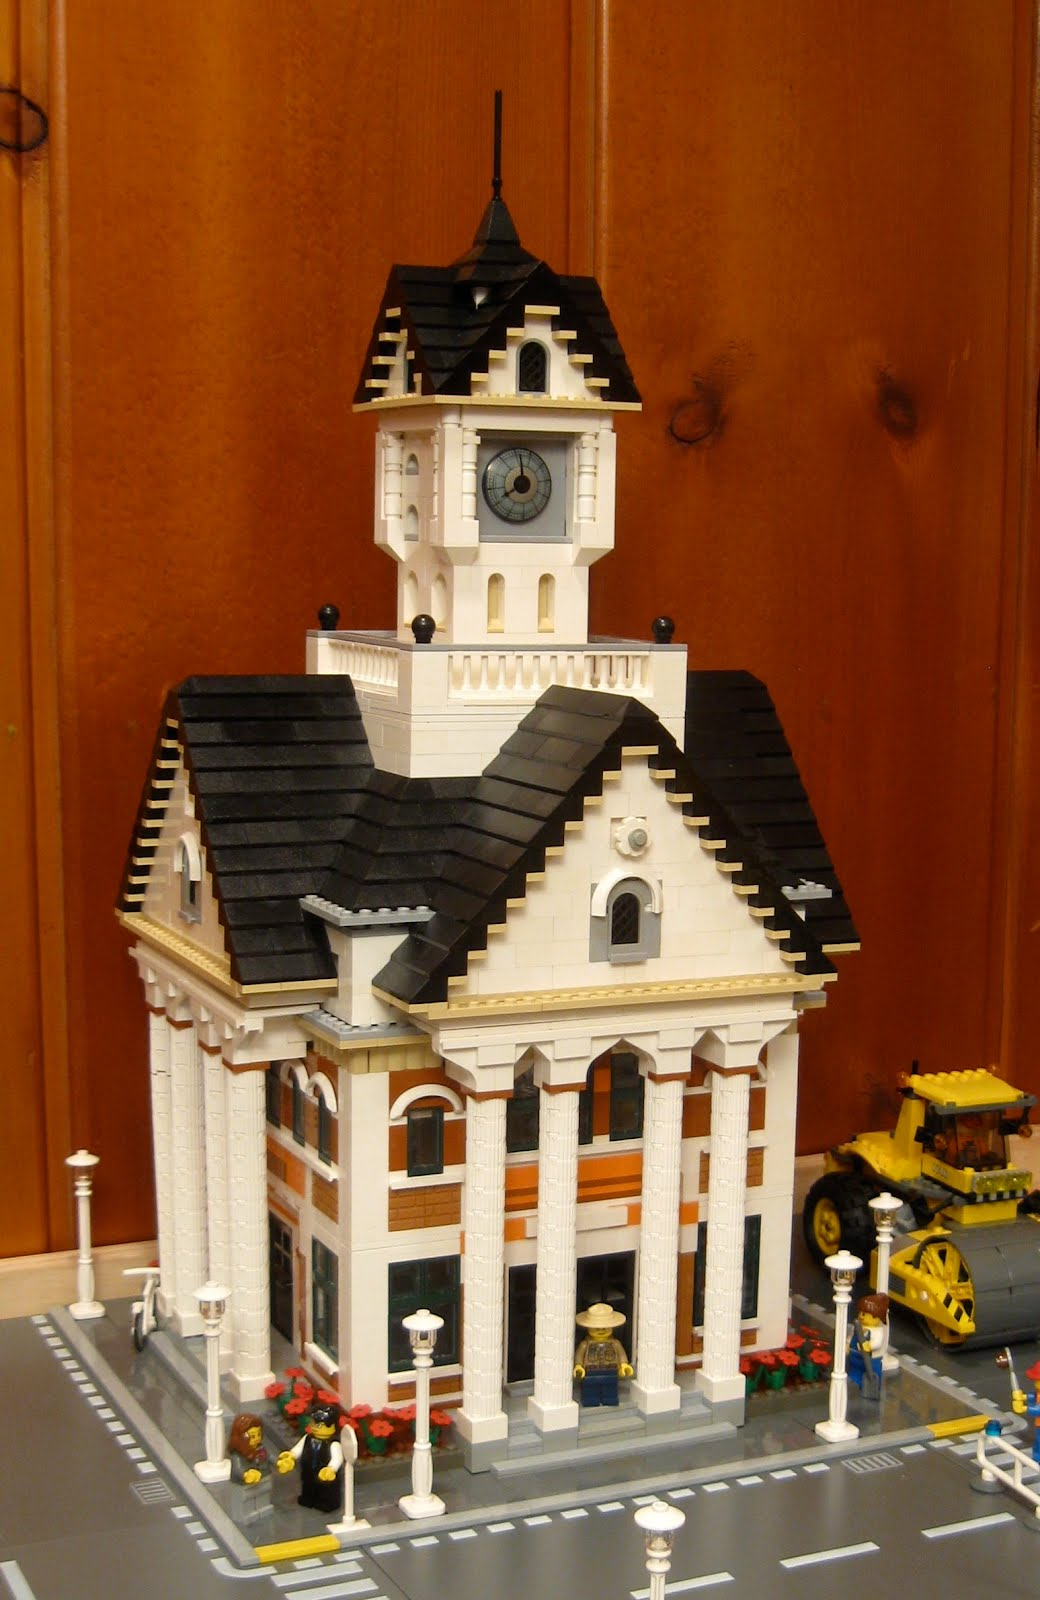 Randuwa Where Does Our Food Come From: Randuwa: Erection Of A Lego Courthouse